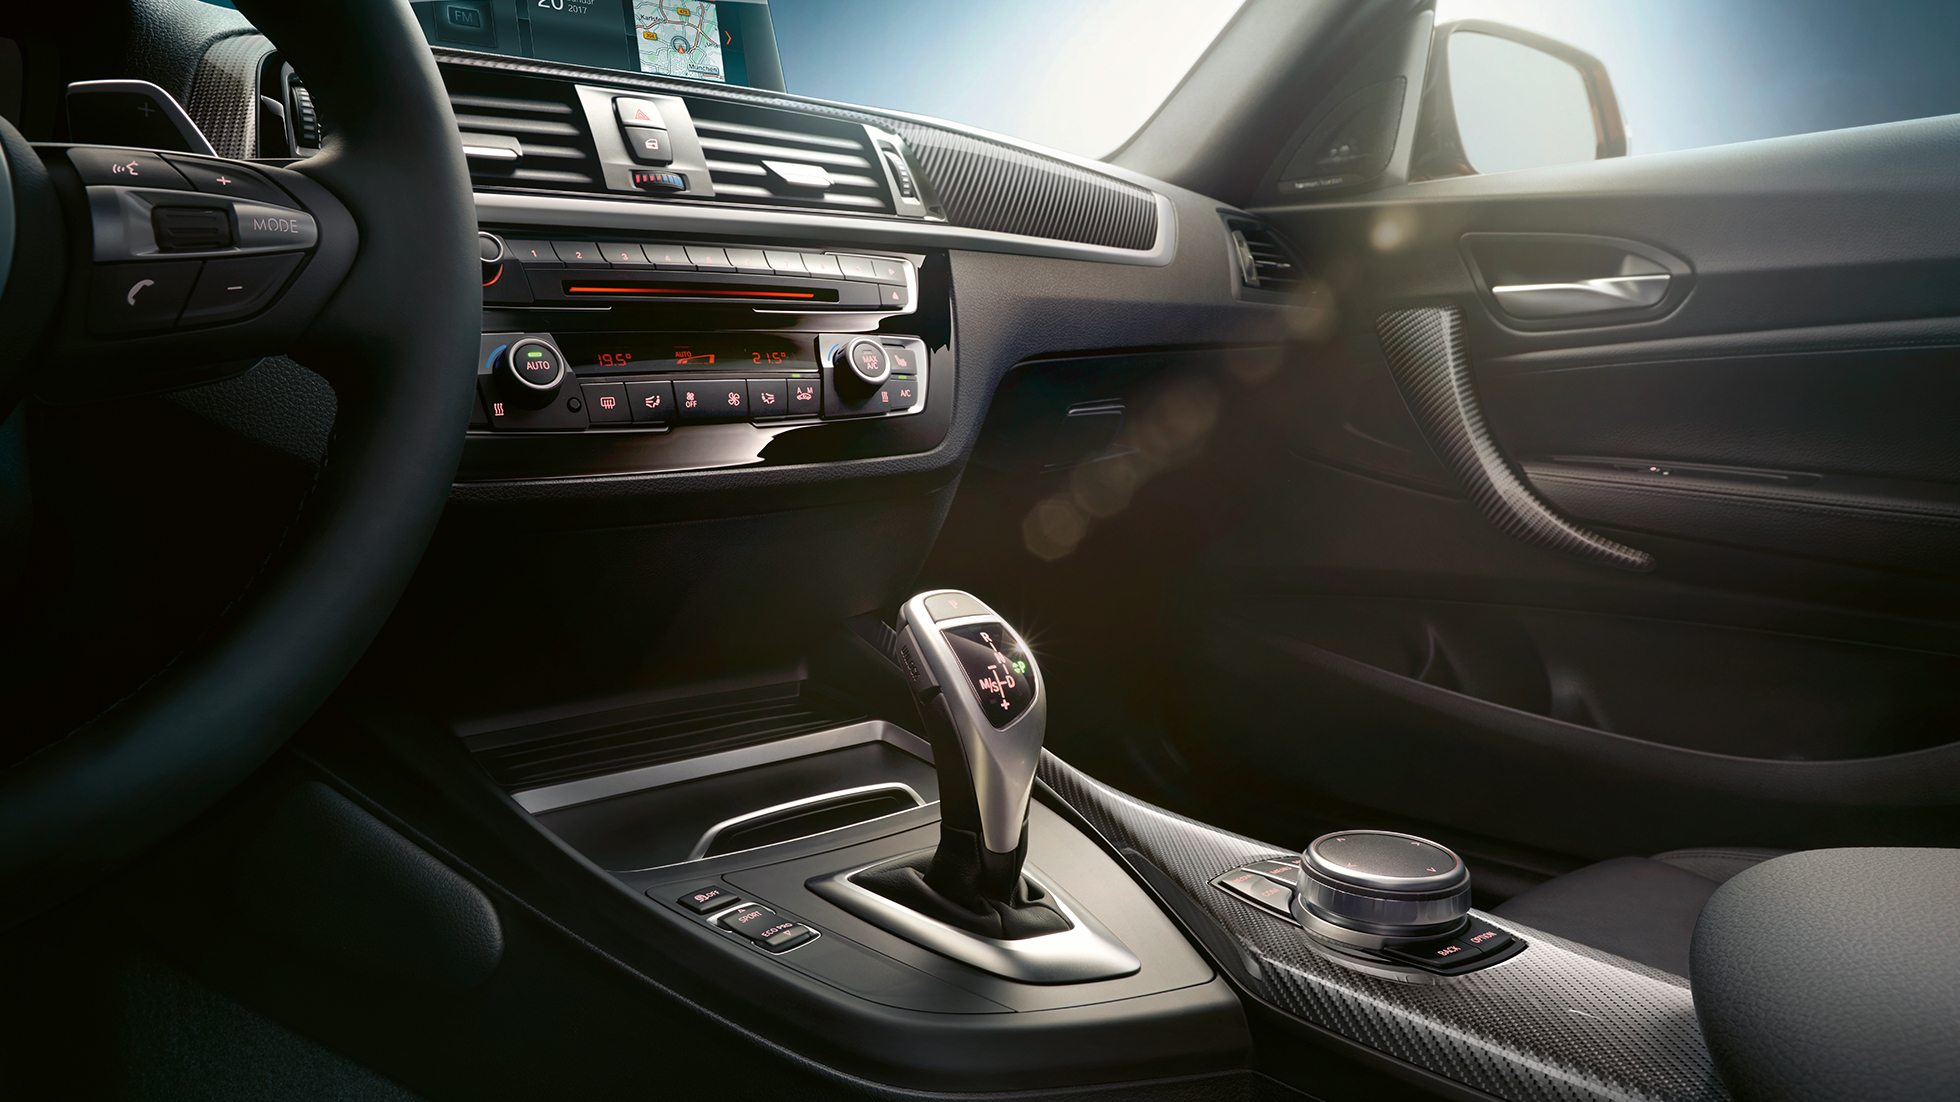 Gear lever BMW M240i Coupé F22 2017 interior